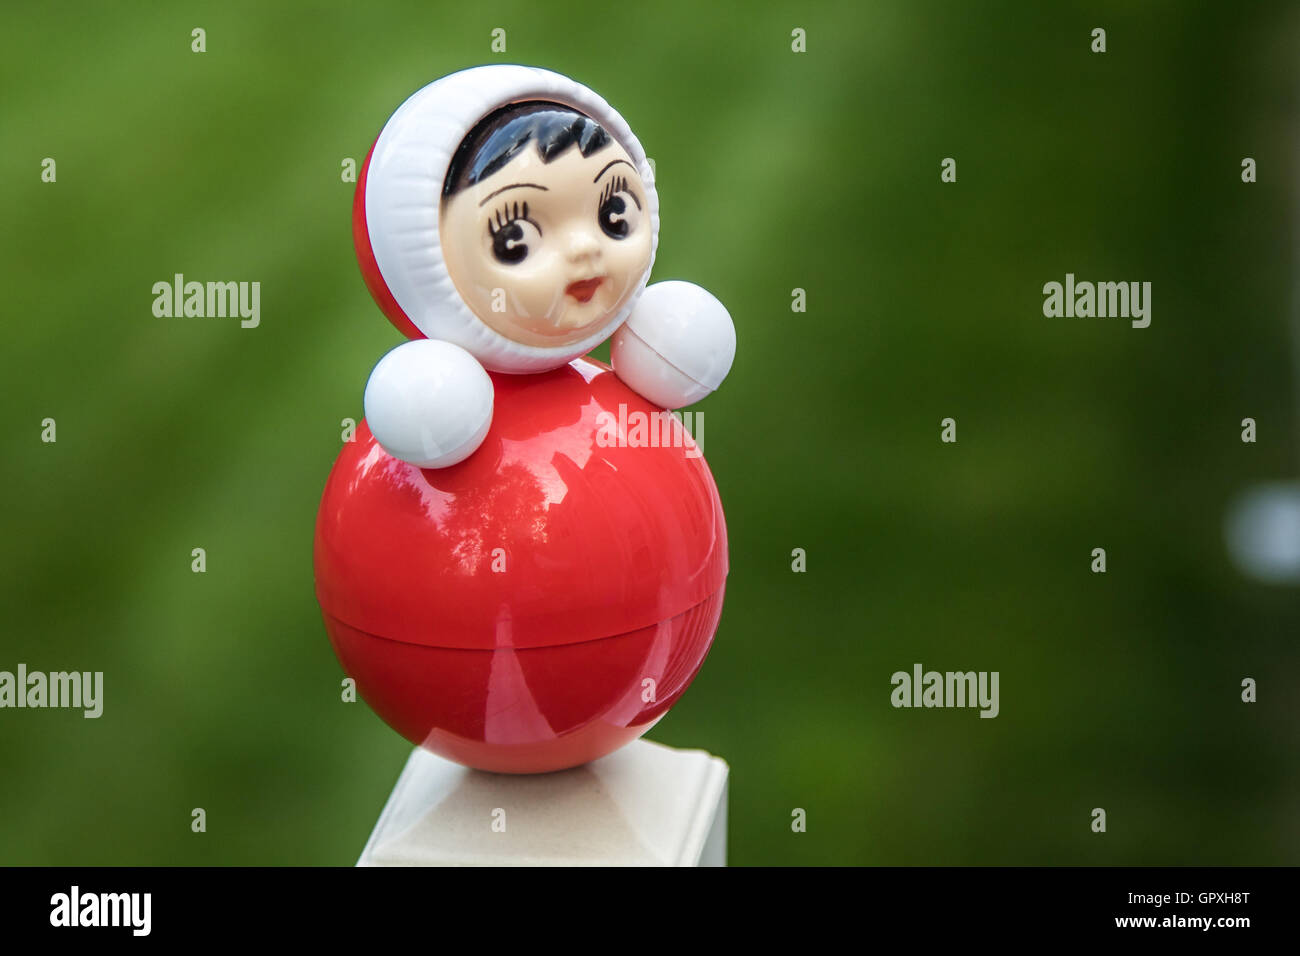 A roly-poly doll. - Stock Image